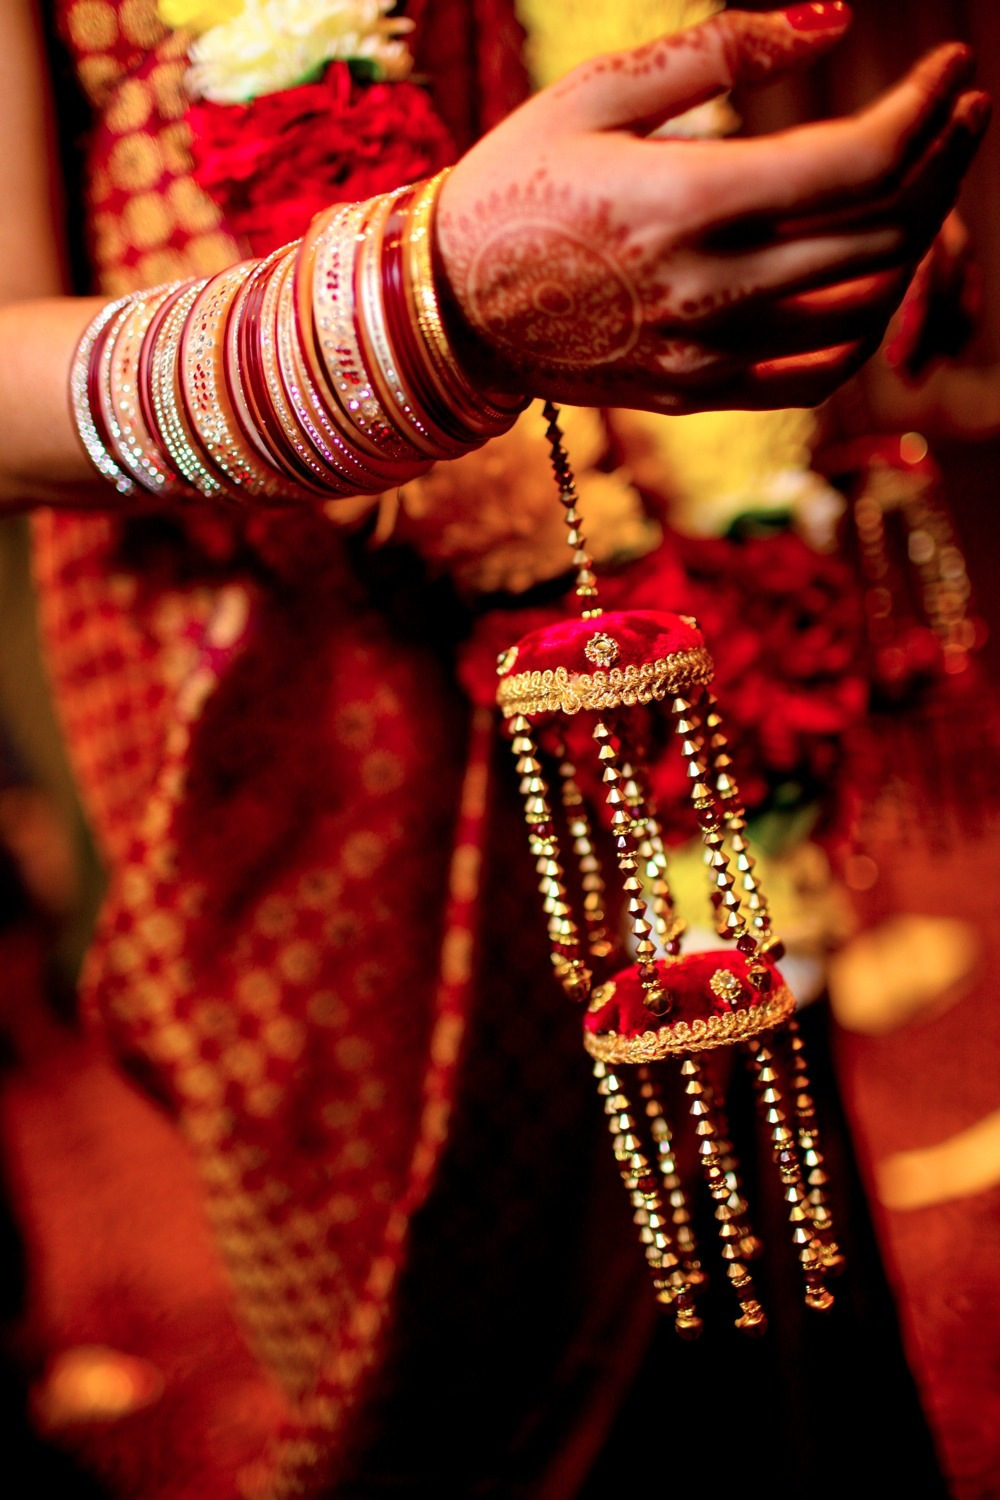 San Francisco Hindu / Indian Wedding Picture of the Henna and Jewelry.